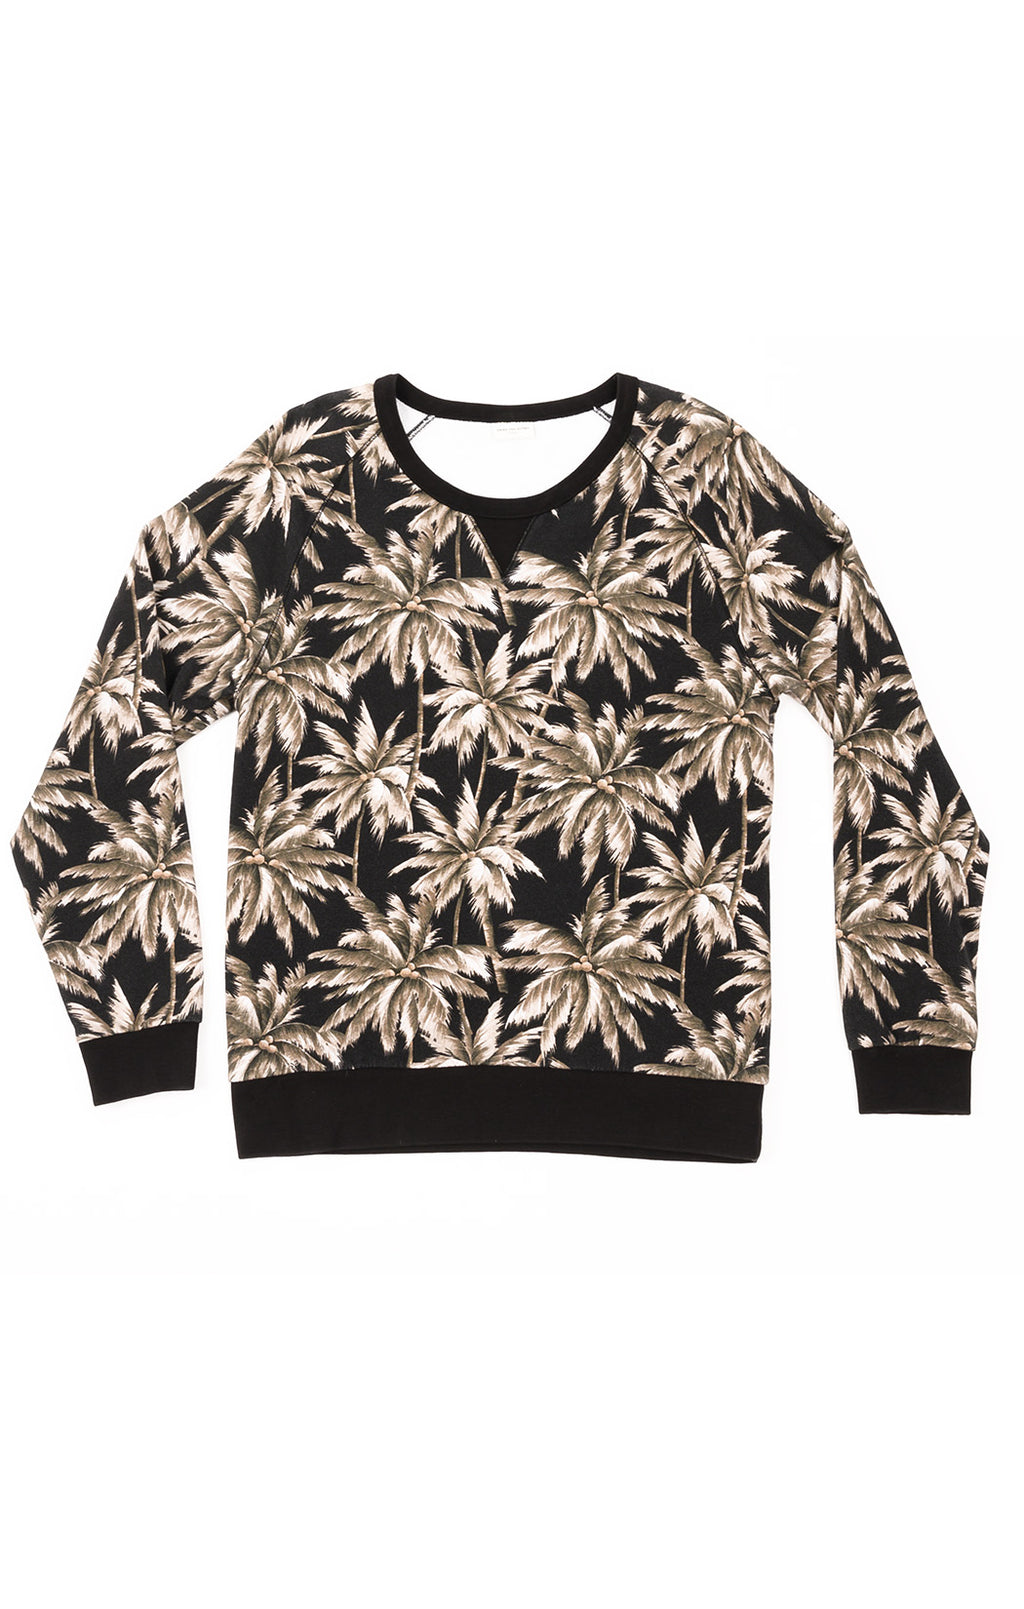 Front view of DRIES VAN NOTEN Sweatshirt  Size: Large